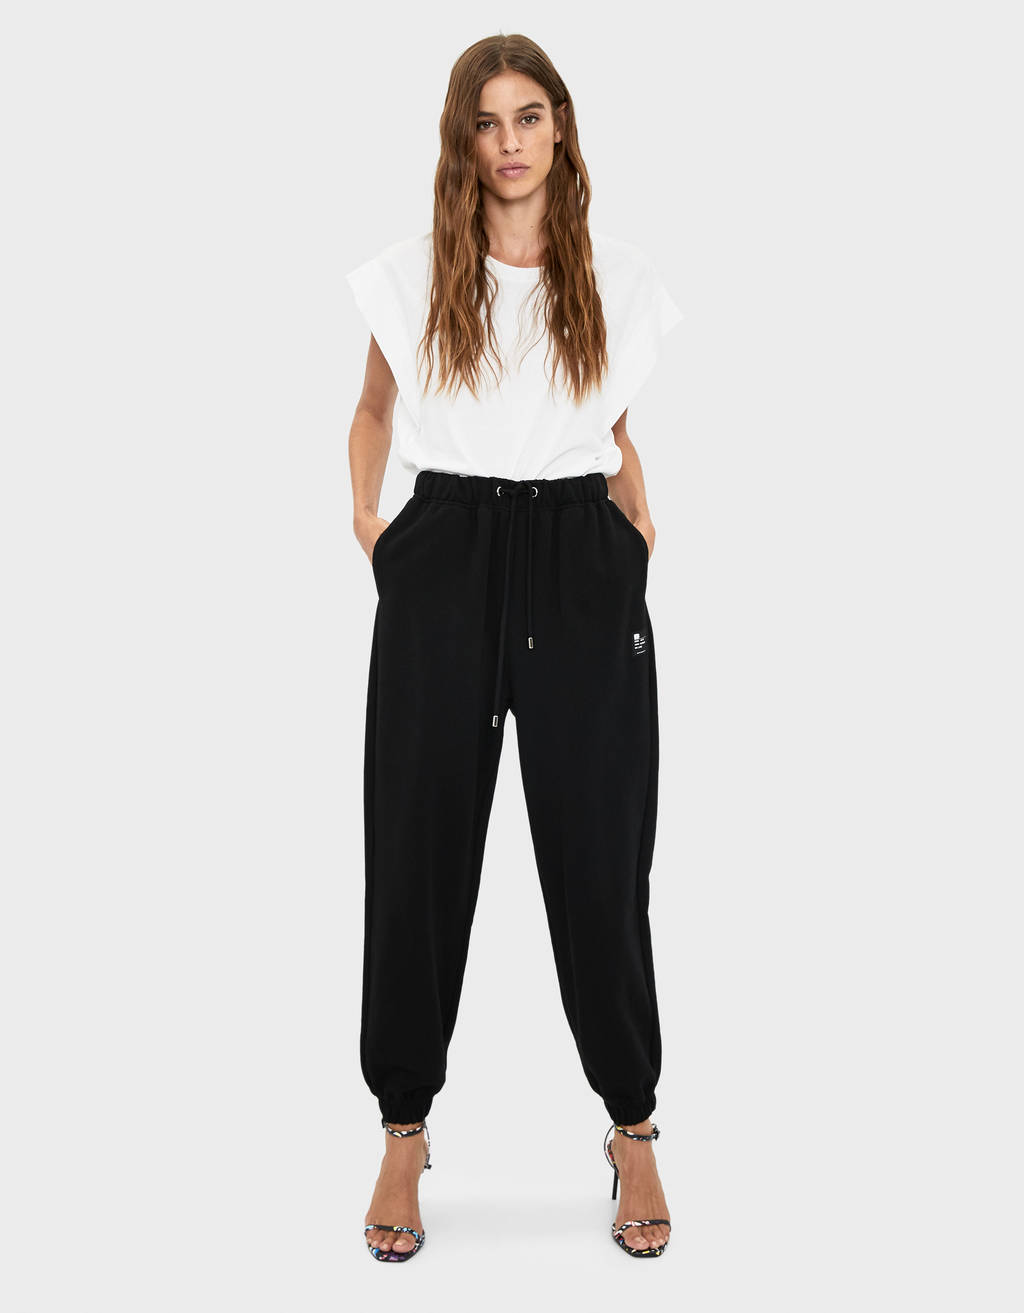 Plush jogging trousers